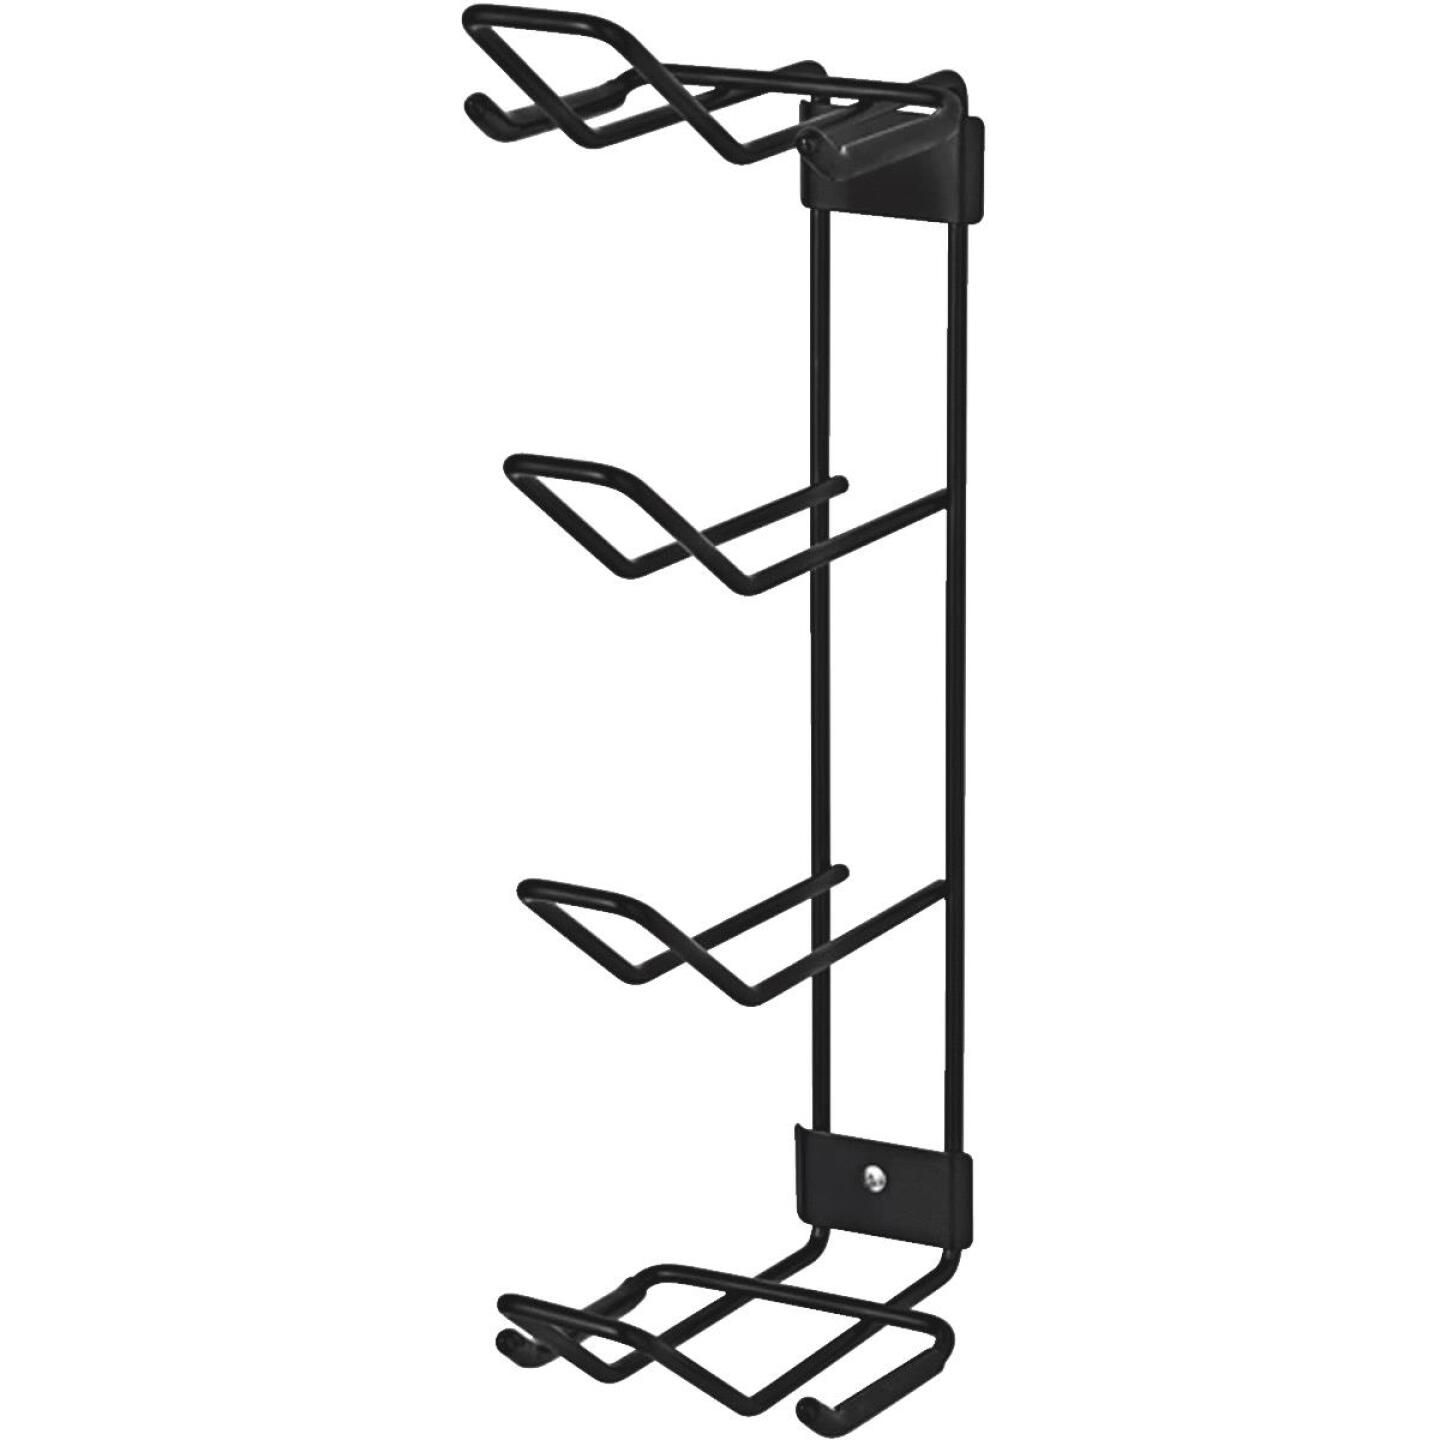 Racor 6-1/2 In. W. x 22 In. H. x 9 In. D. Golf Storage Rack Image 3